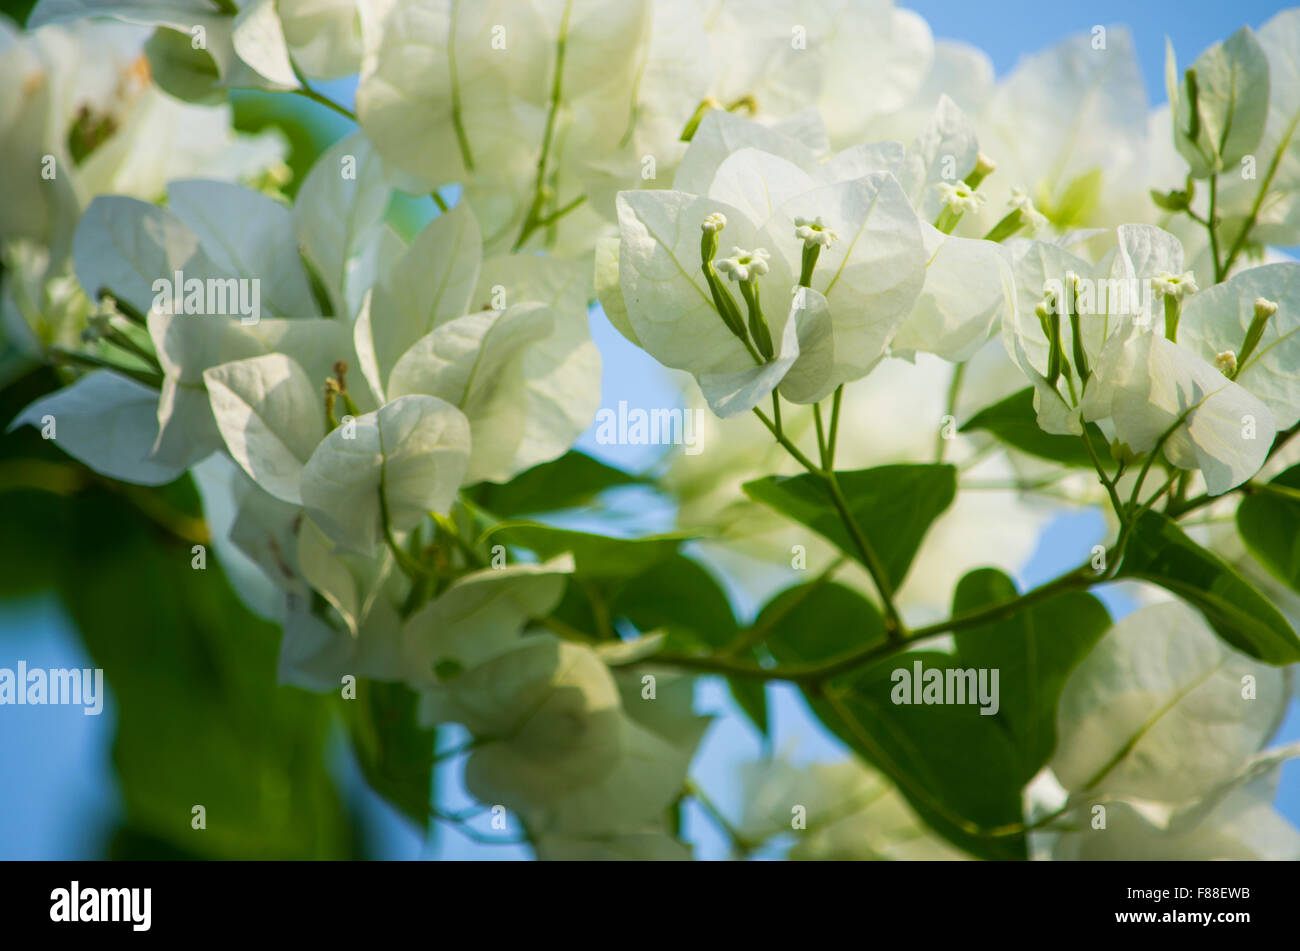 White Tropical Flowers On A Bush Stock Photo 91156391 Alamy